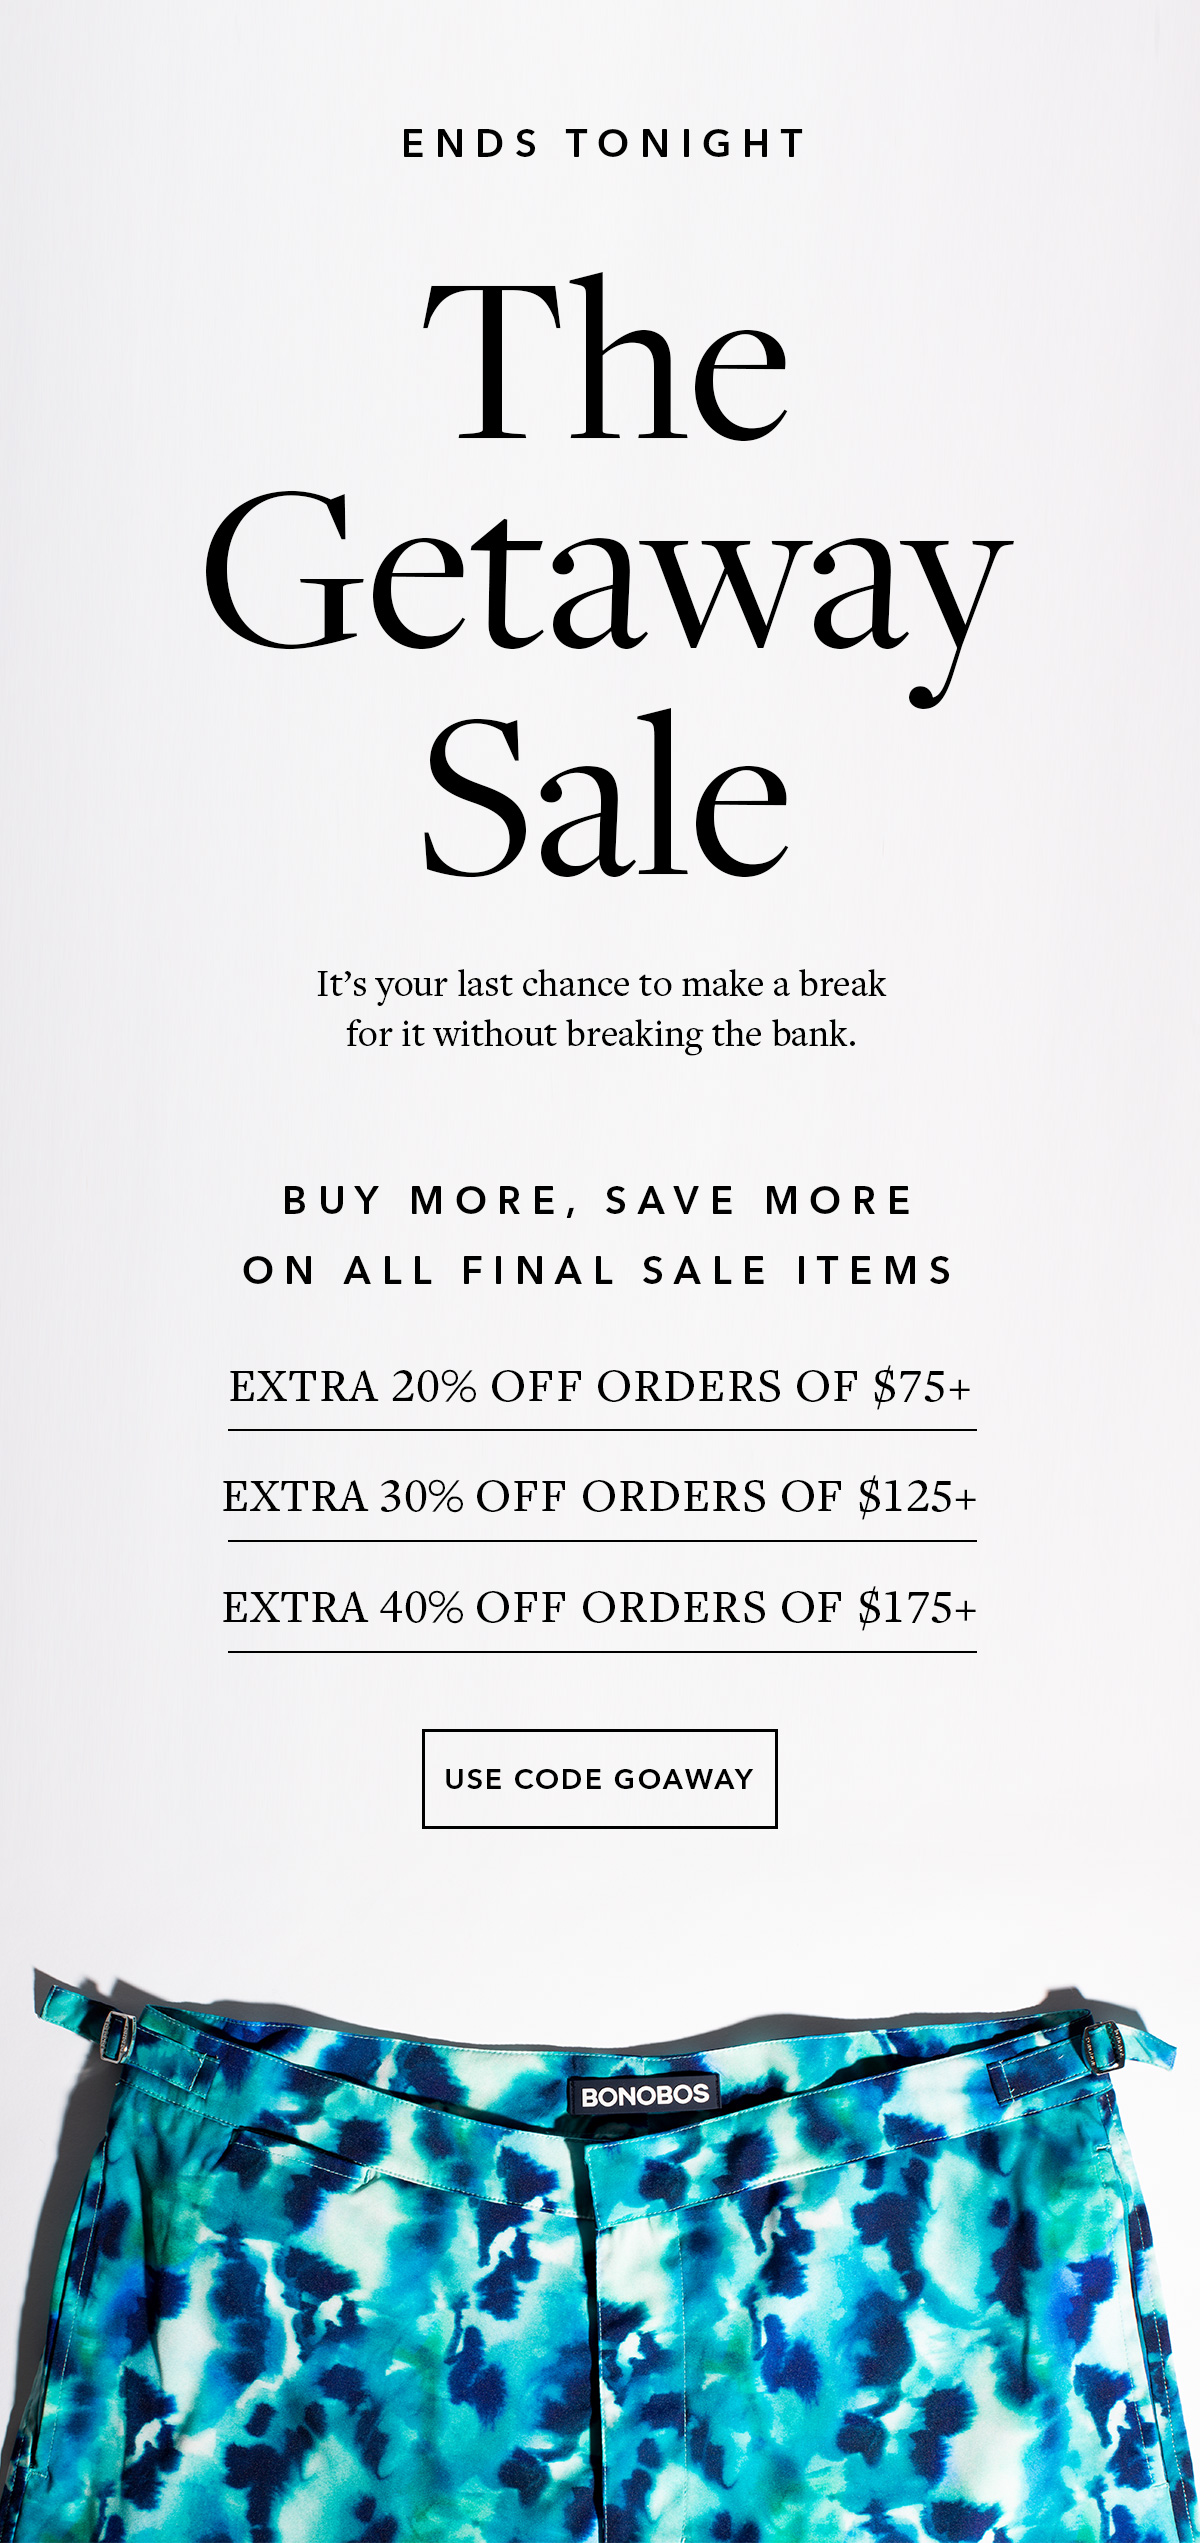 Ends Tonight: The Getaway Sale // Buy More, Save More On All Sale Items // Extra 20% Off Orders of $75+ / Extra 30% Off Orders of $125+ / Extra 40% Off Orders of $175+ // USE CODE GOAWAY →